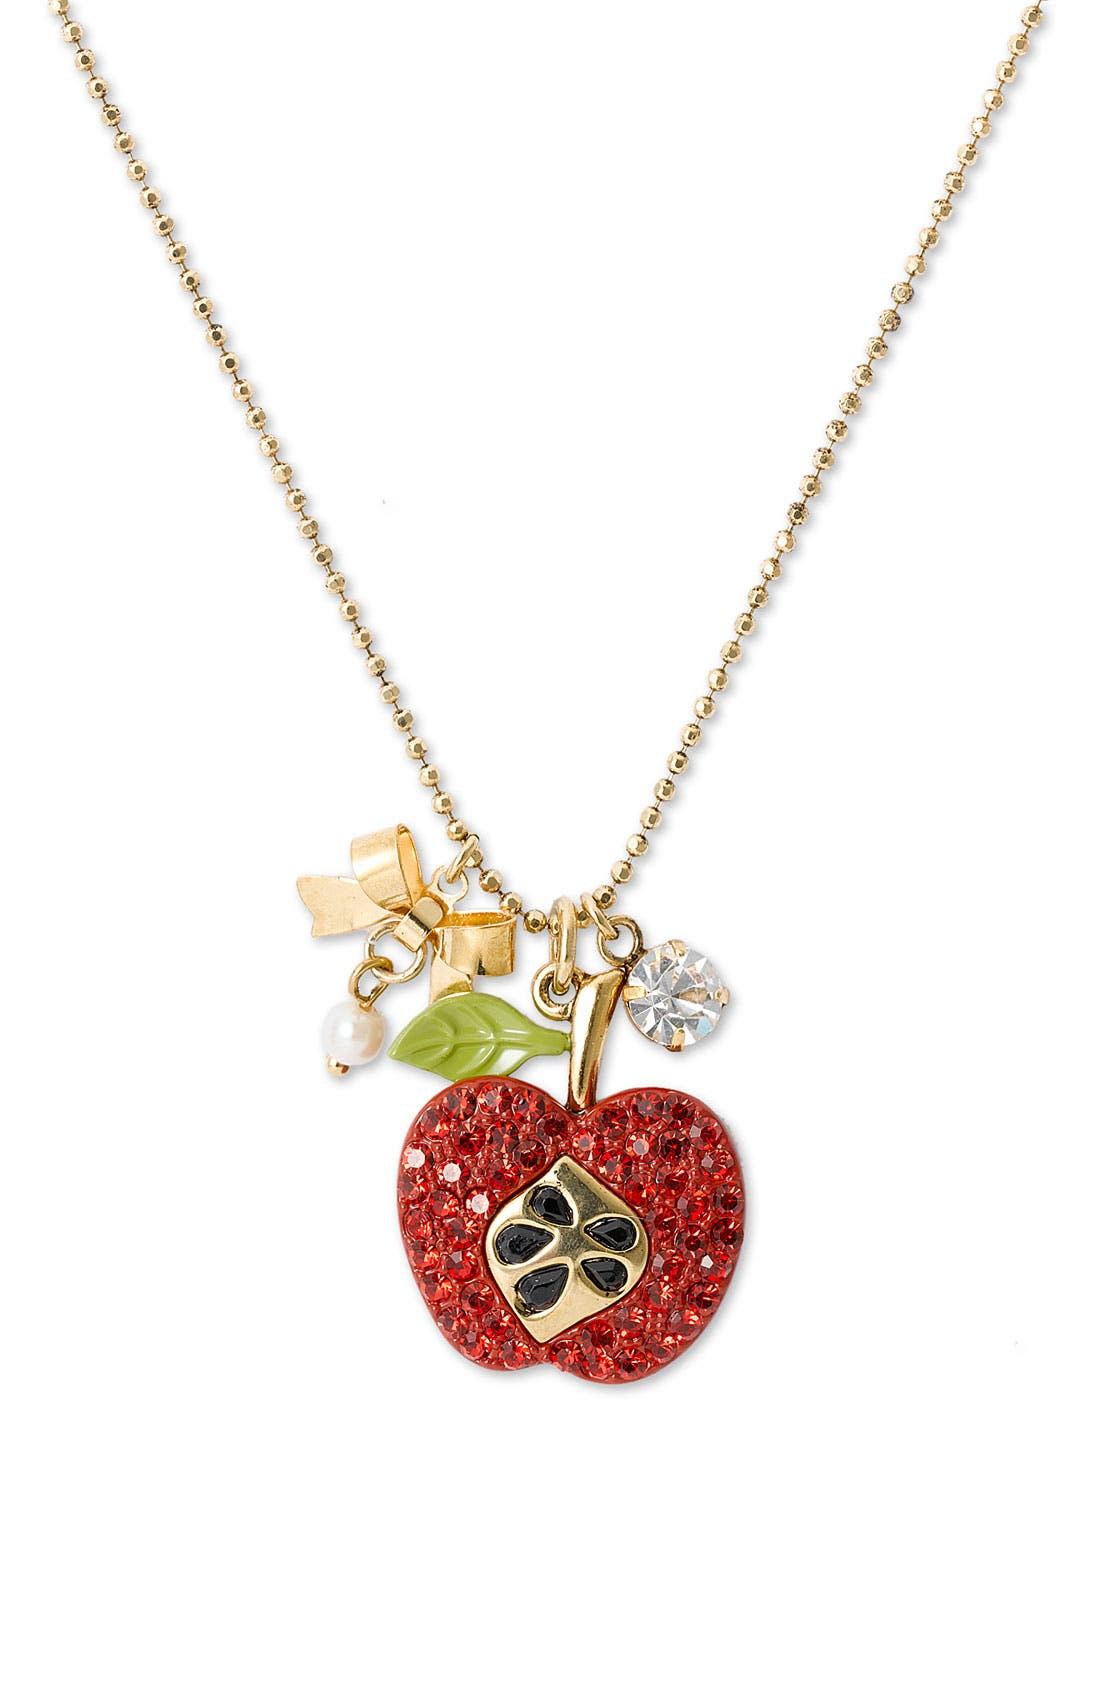 Alternate Image 1 Selected - Betsey Johnson 'Red Apple' Charm Necklace